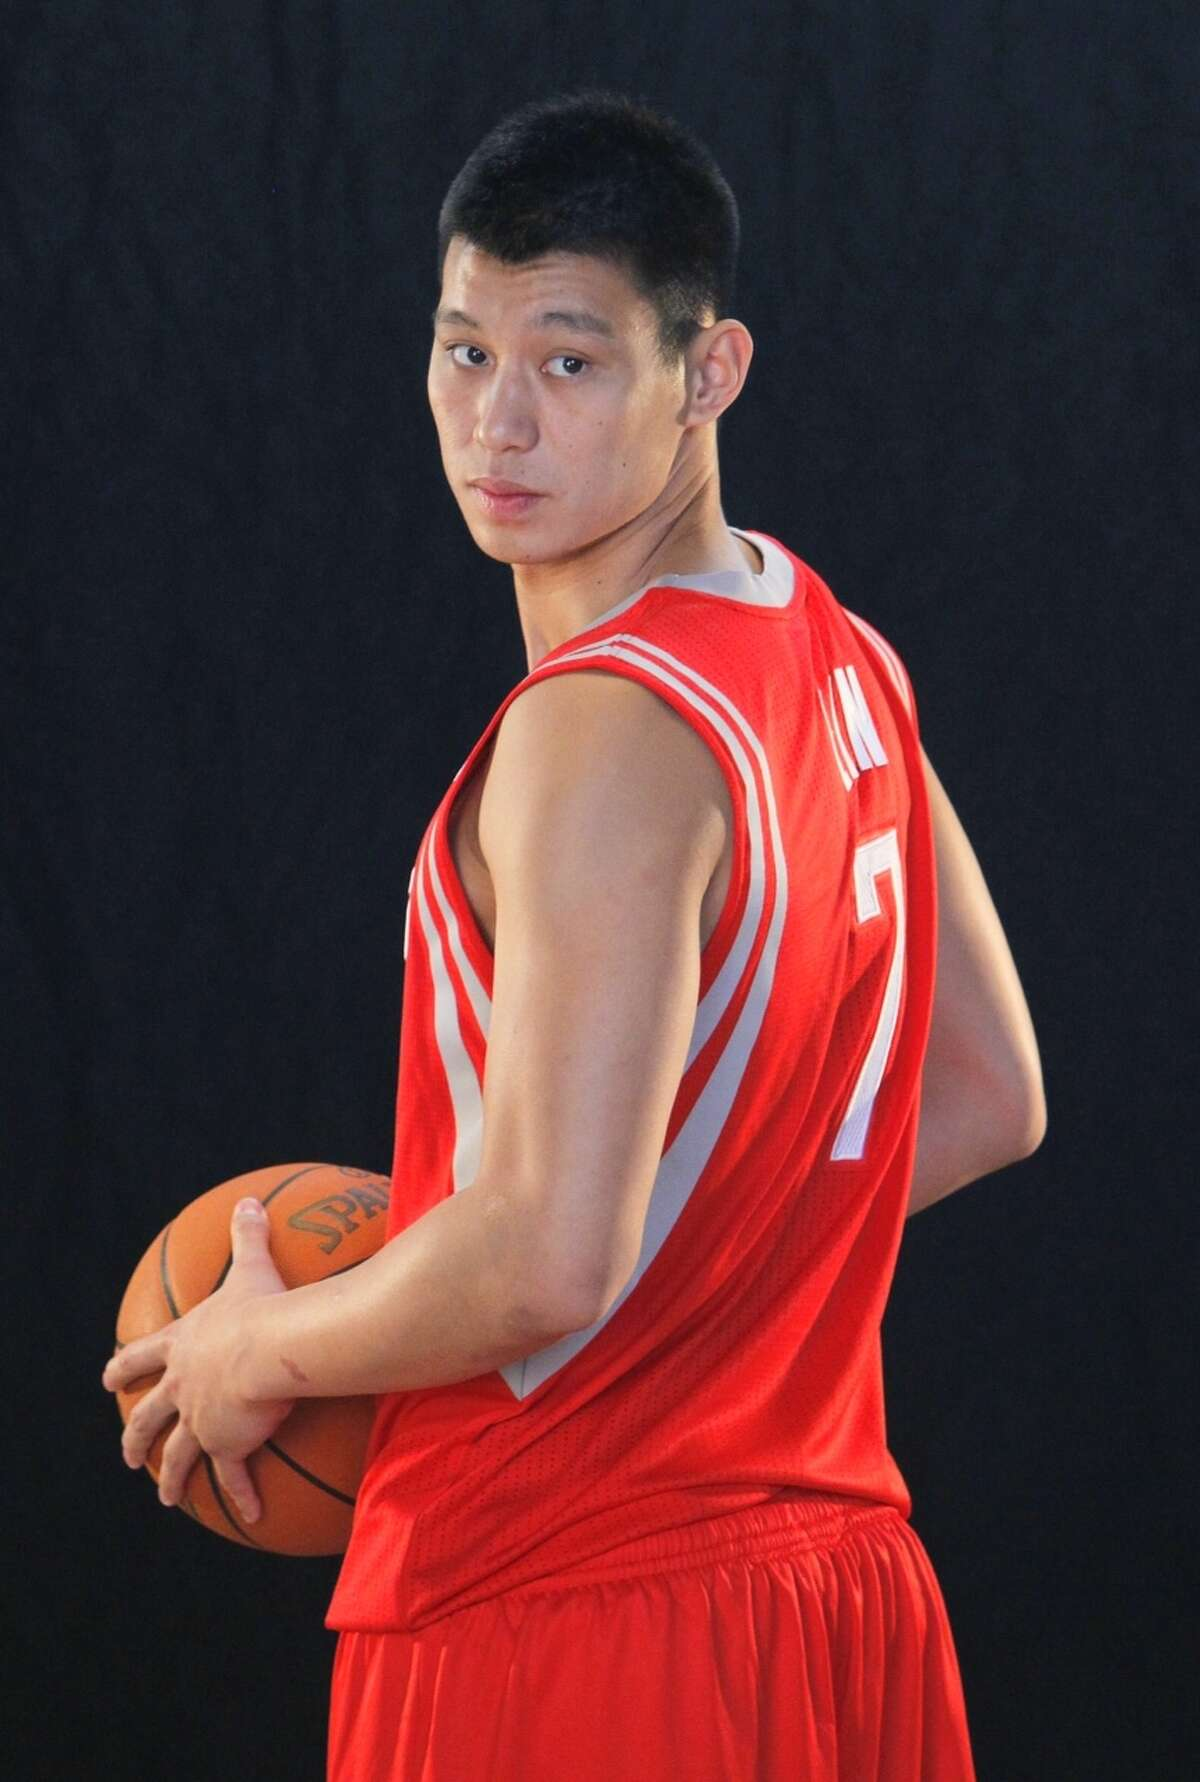 Sporting his new No. 7 jersey, Jeremy Lin poses for a photo on Thursday.